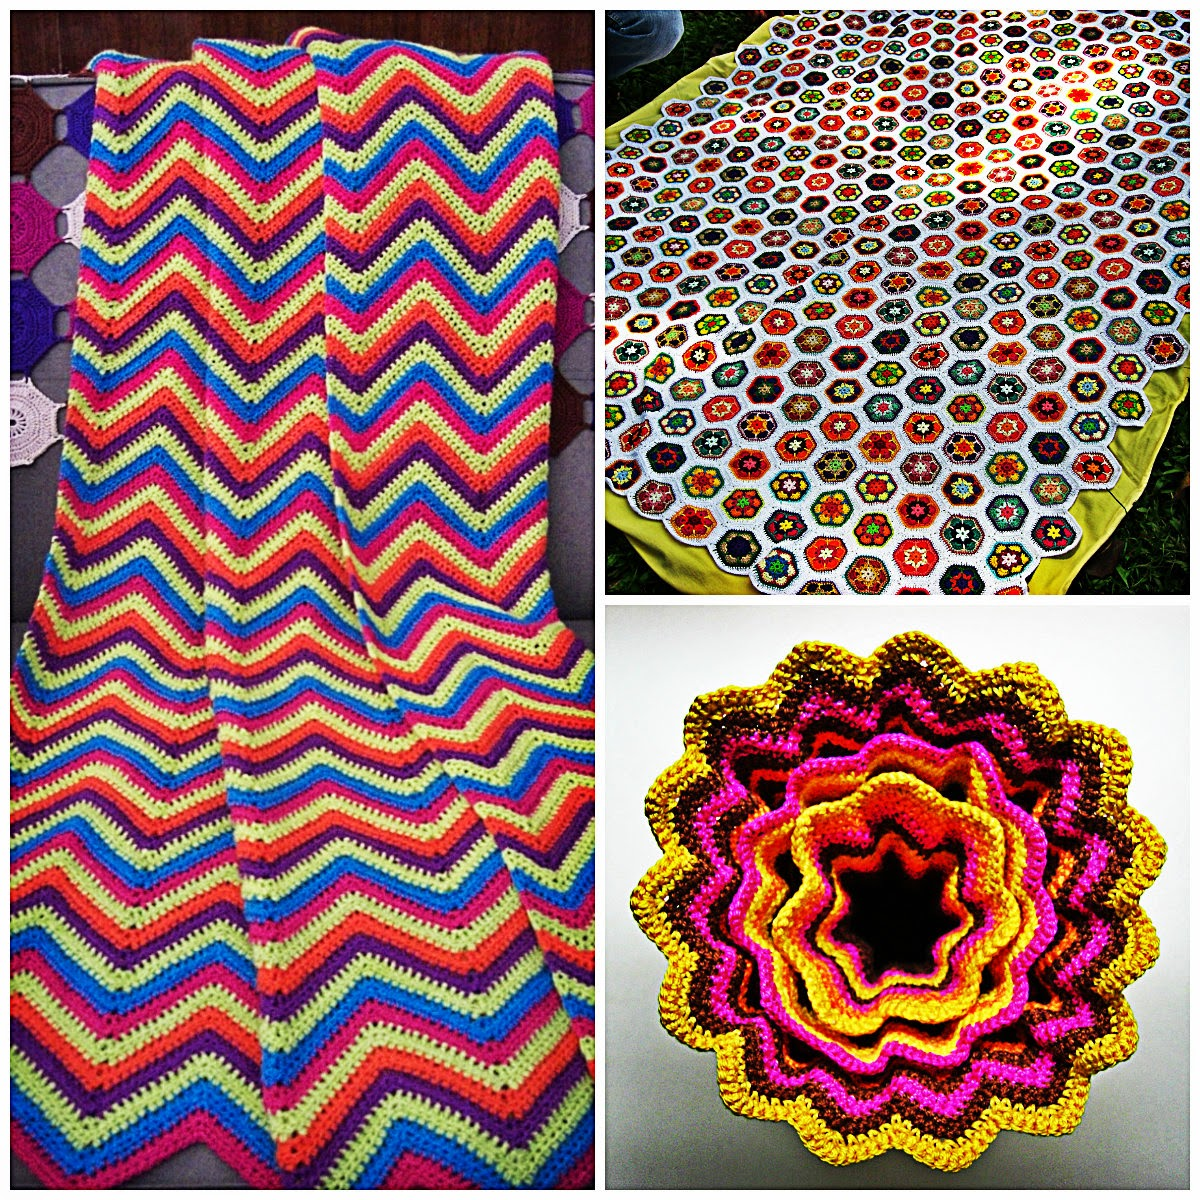 More on the bedspread I made (top right) in my blog entry here .